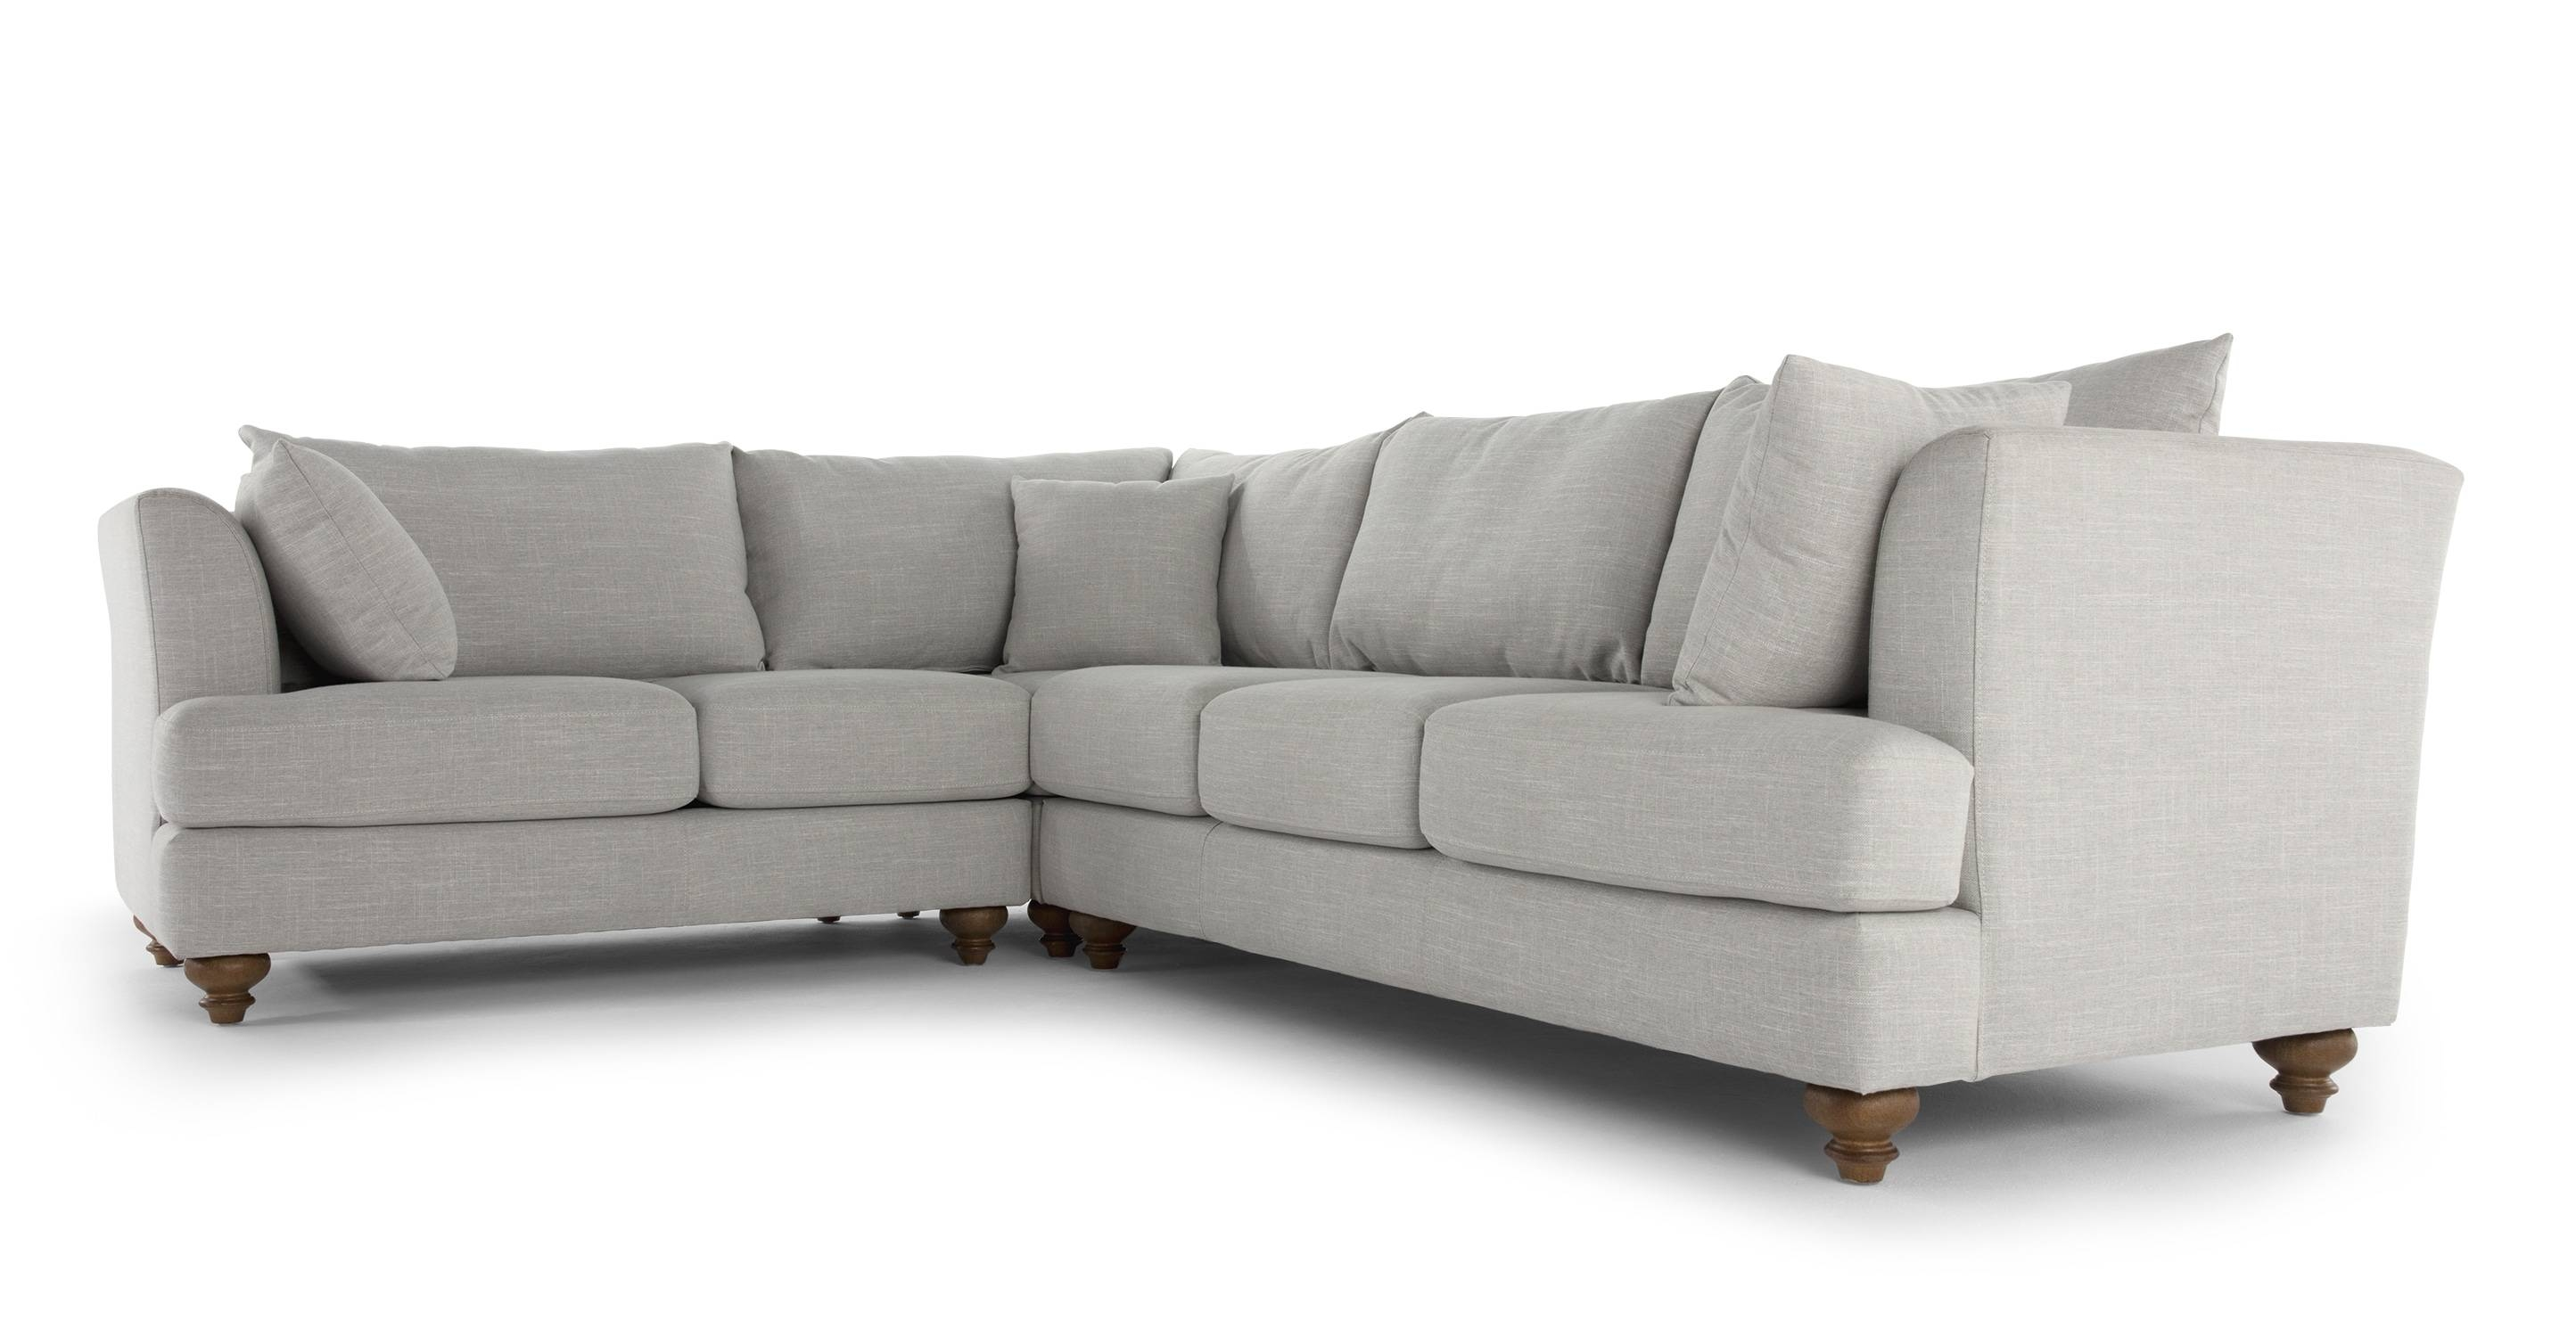 Elliot Corner Sofa, Chic Grey | Made inside Elliott Sofa (Image 15 of 30)